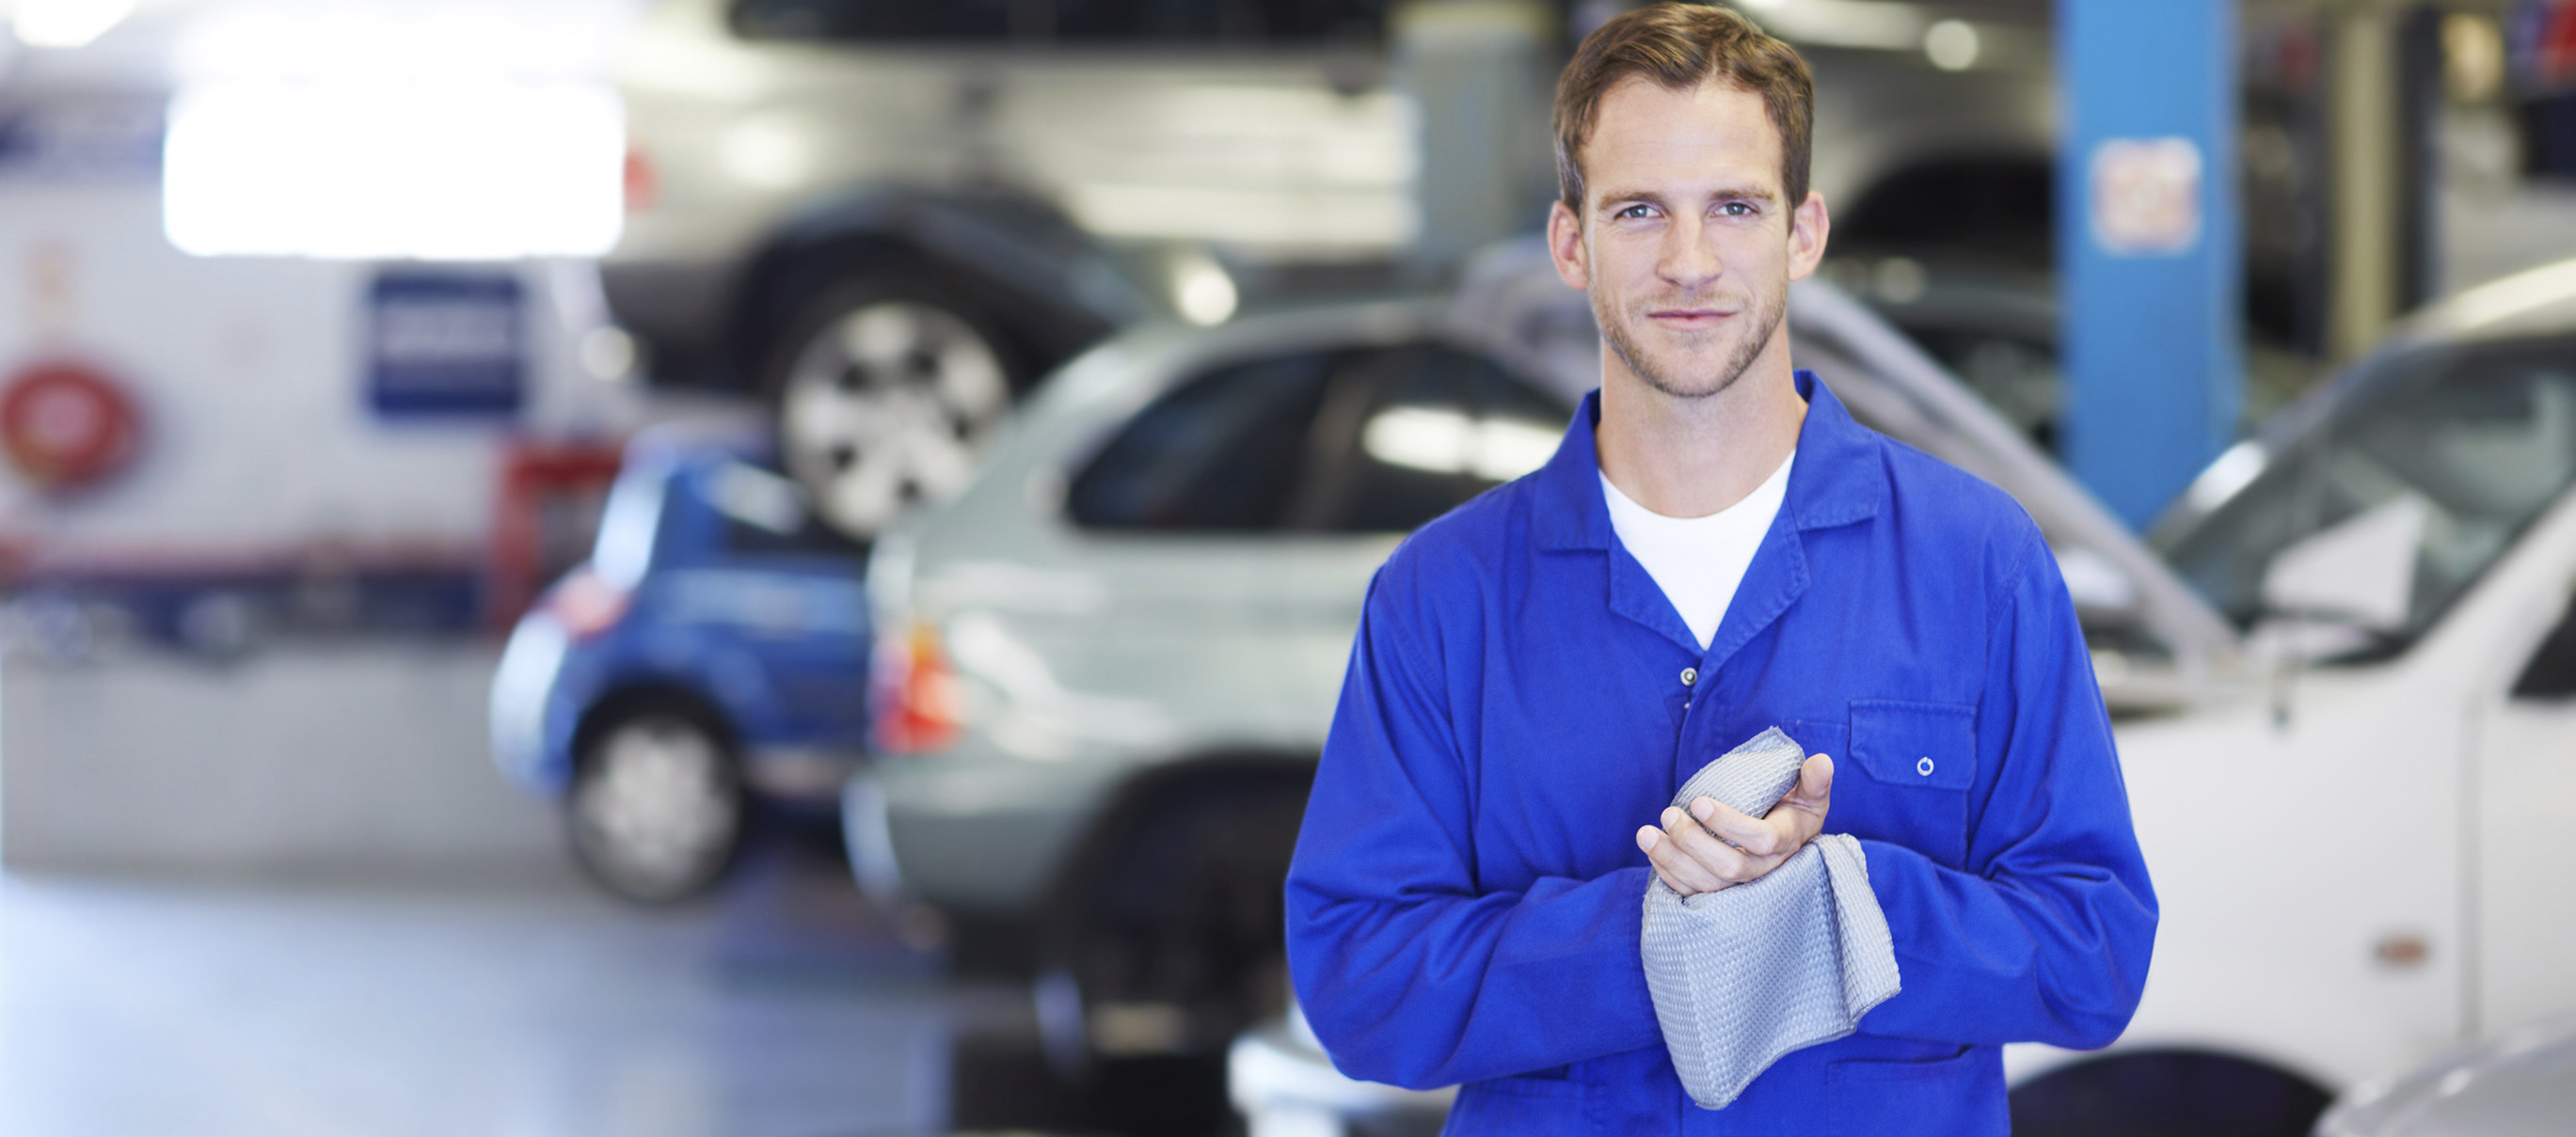 Oil Change Service in Davison, MI